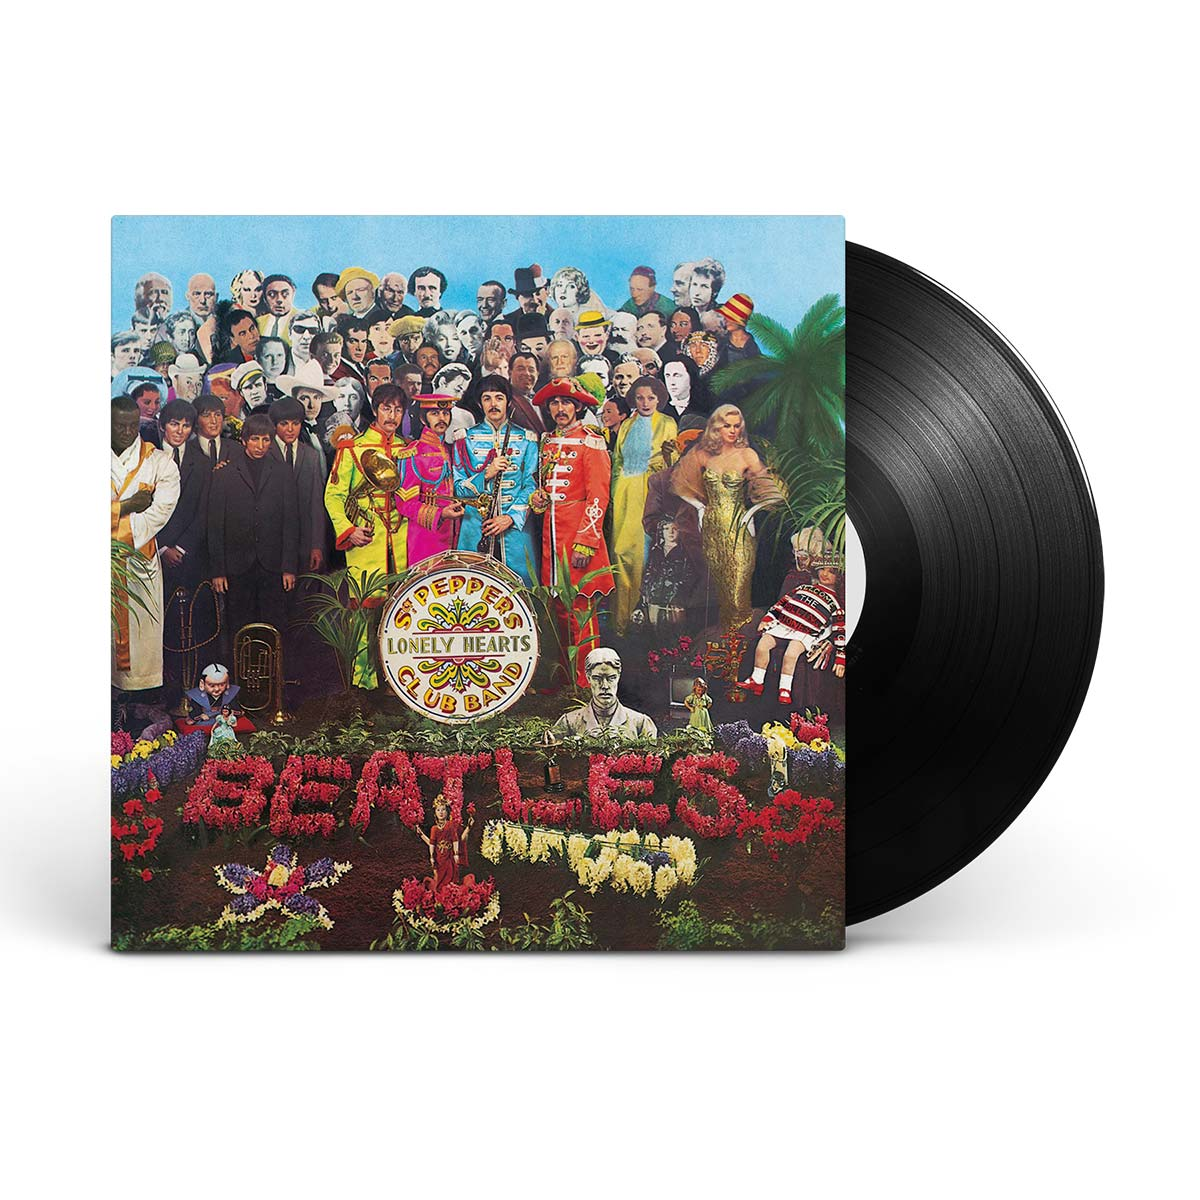 ​LP IMPORTADO The Beatles Sgt. Pepper's Lonely Hearts Club Band